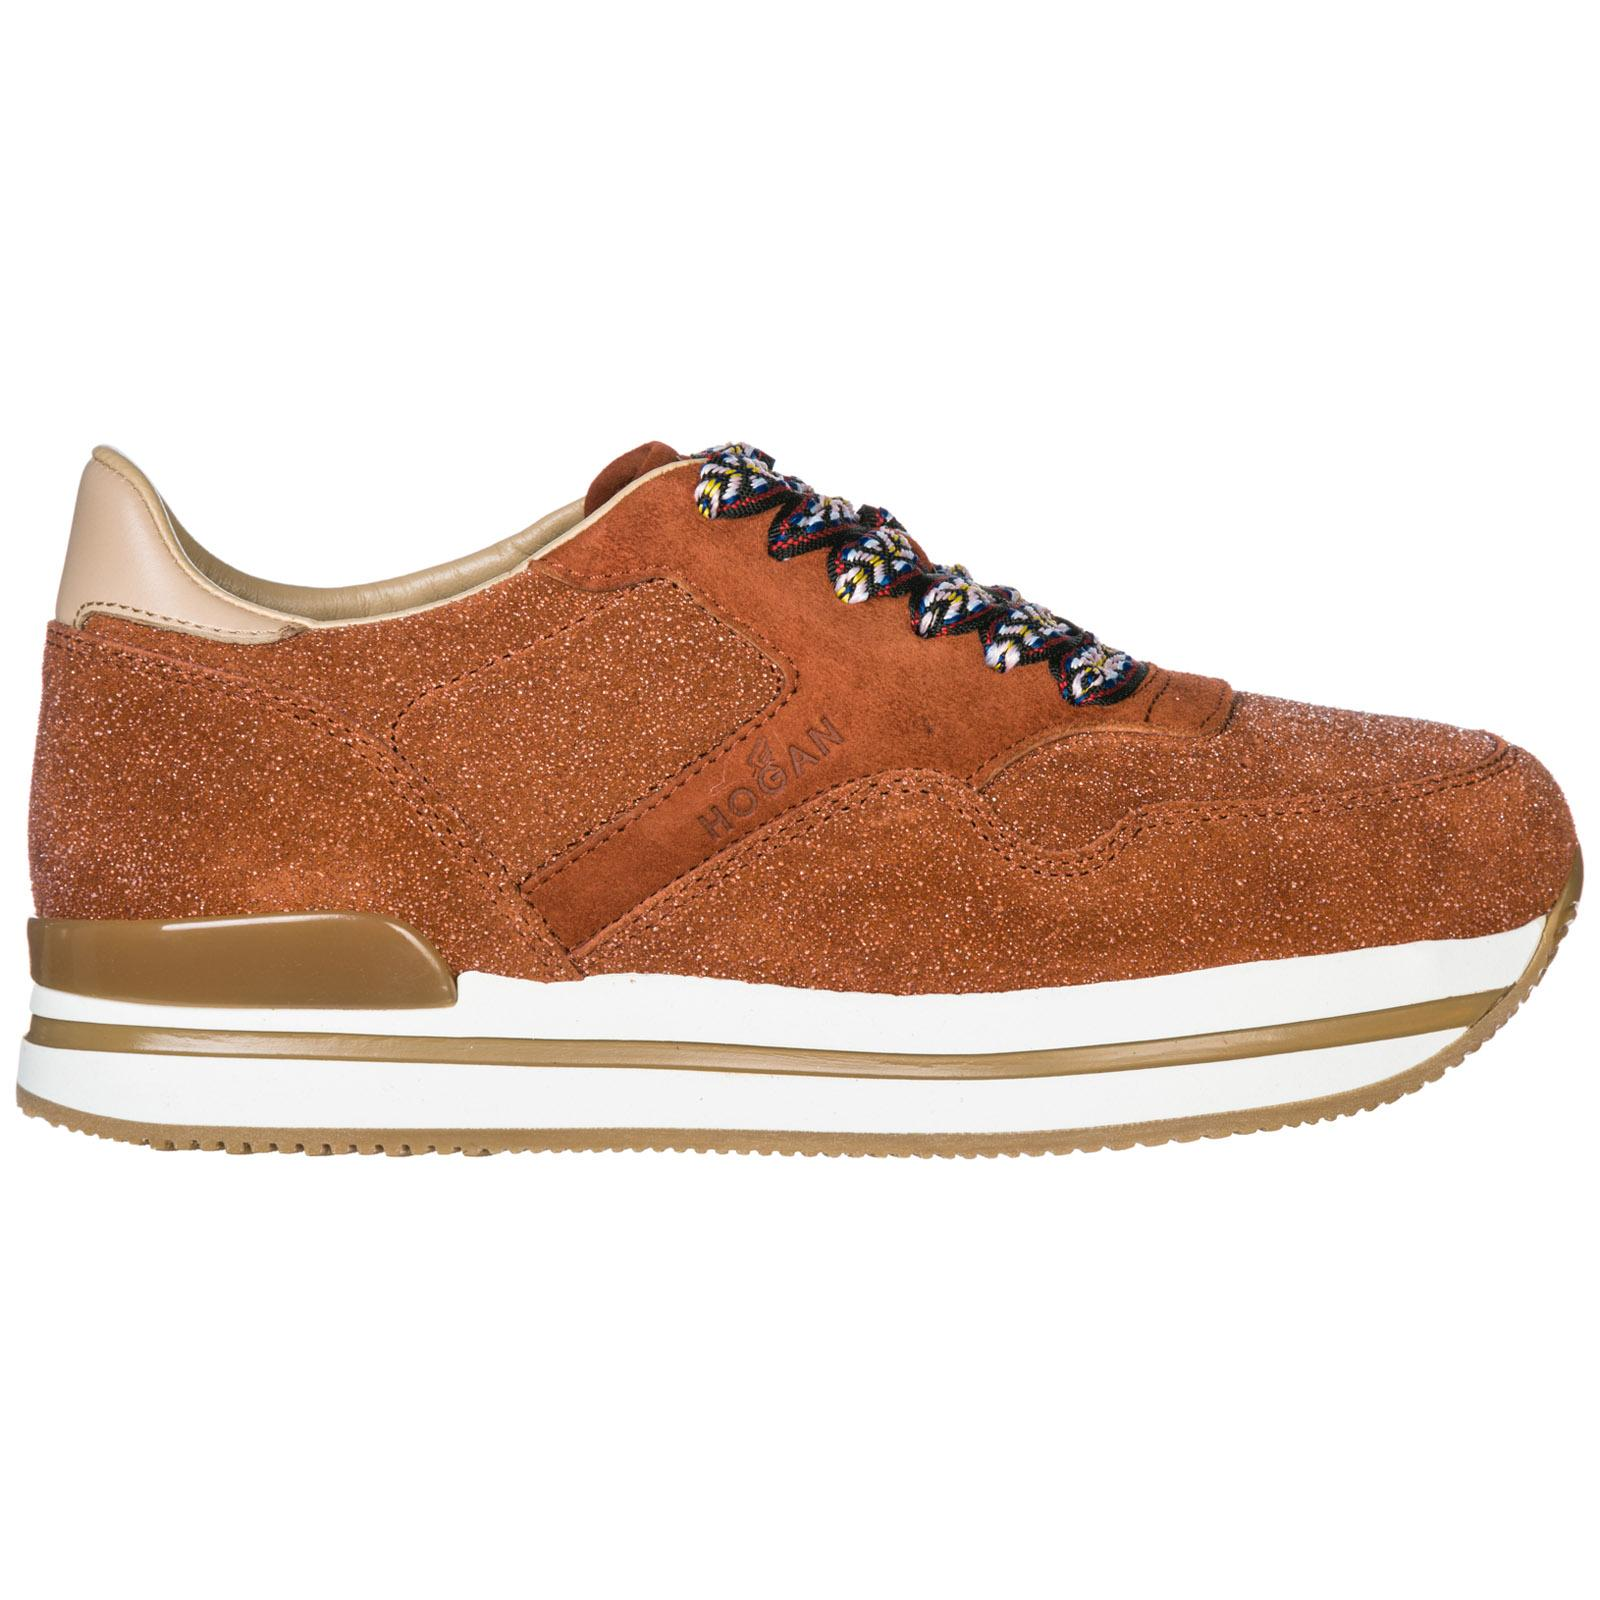 45c0ca03737ff Hogan Women S Shoes Suede Trainers Sneakers H222 In Orange Modesens